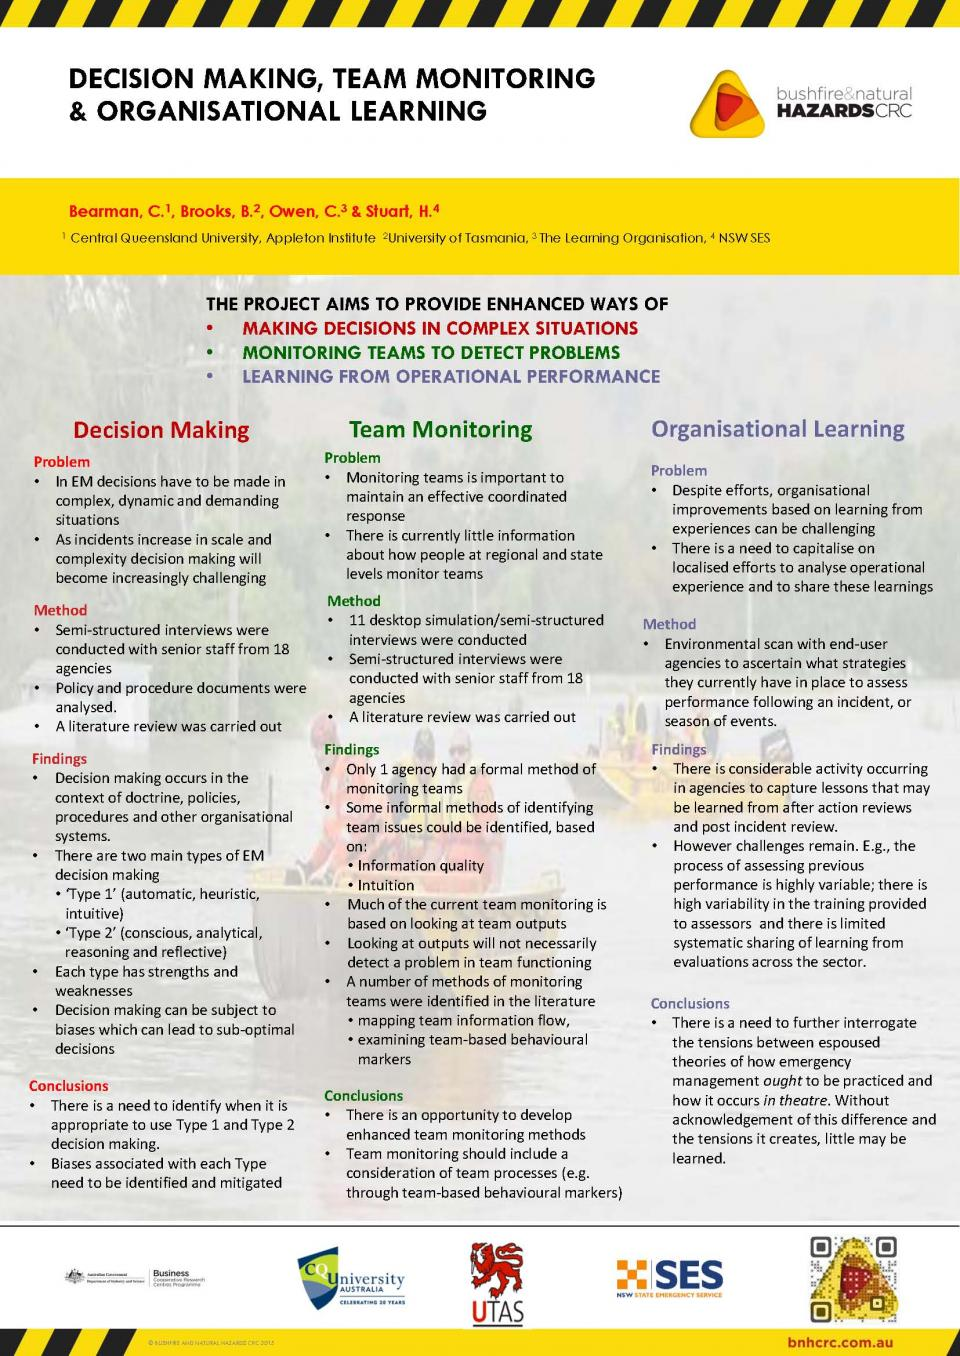 Decision Making, Team Monitoring and Organisational Learning